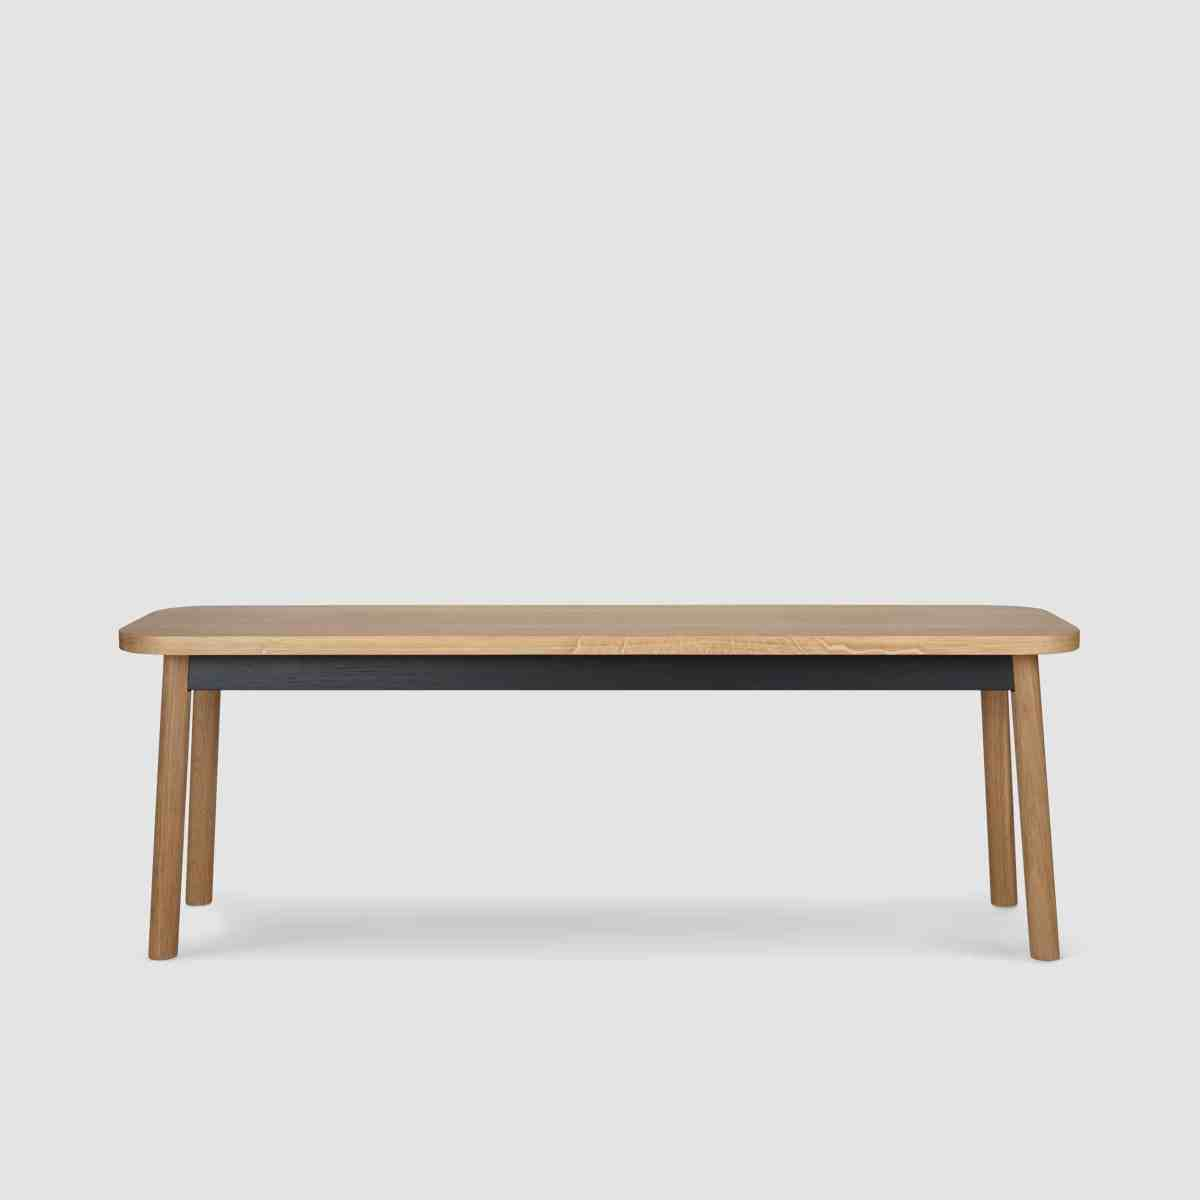 semley-bench-large-oak-another-country-002